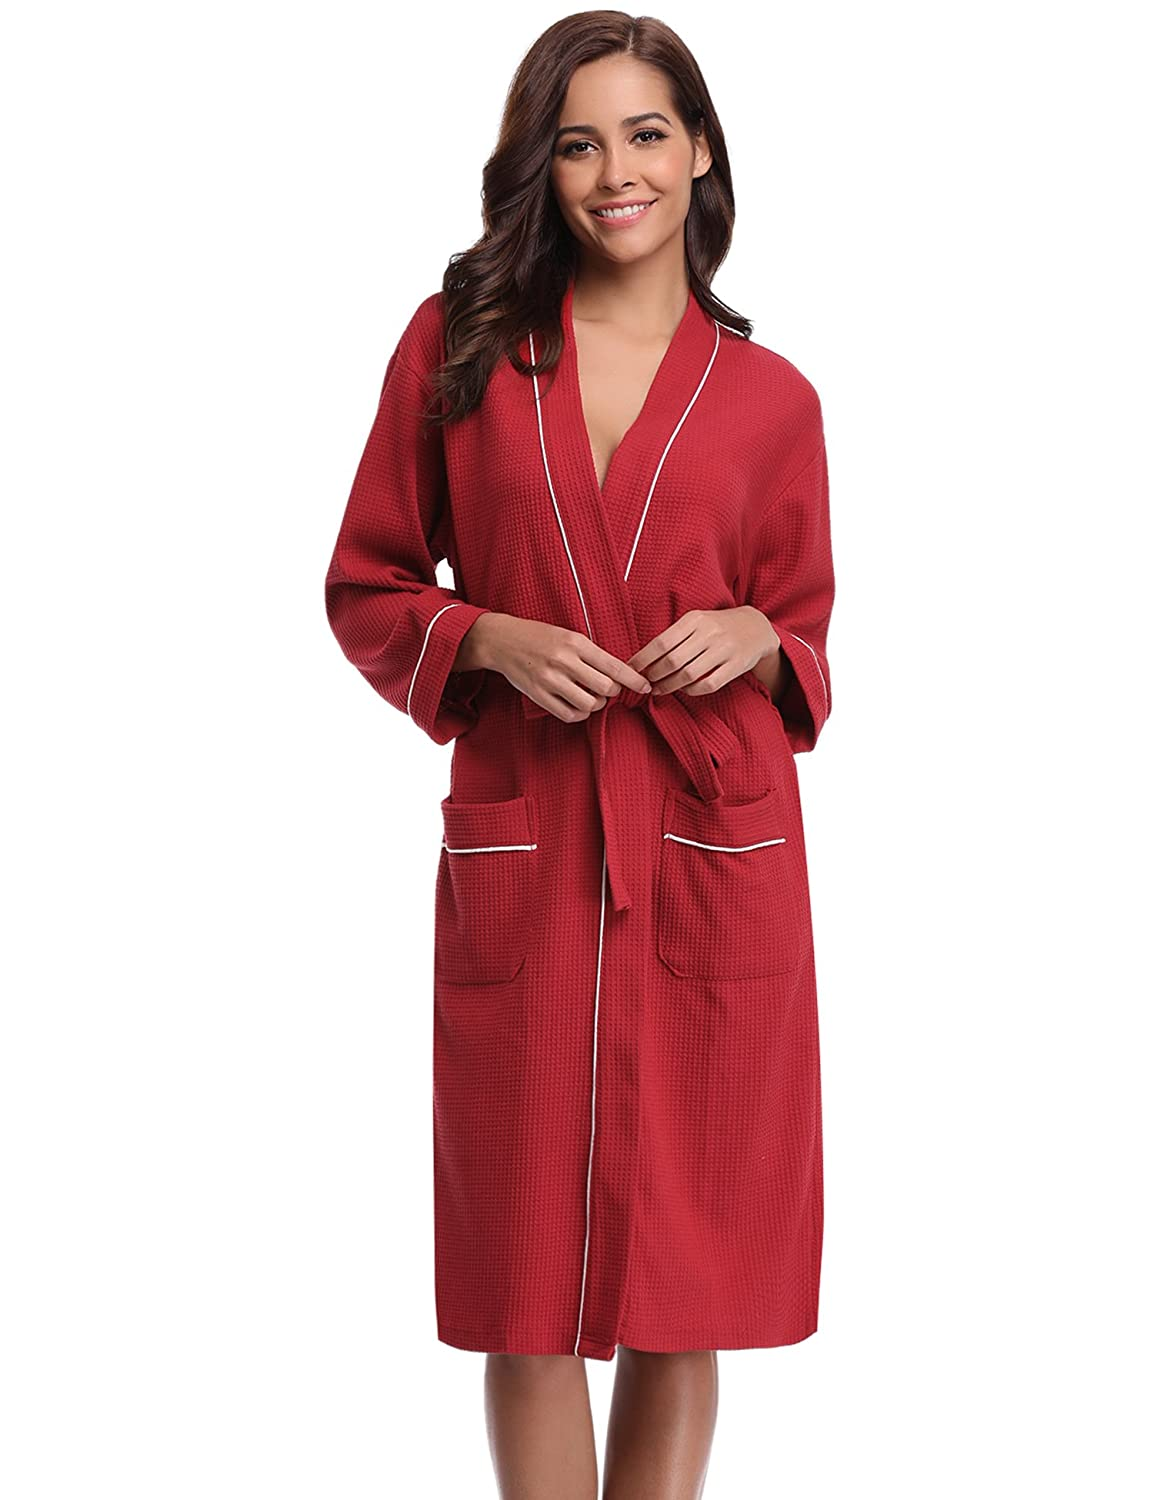 Aibrou Unisex Waffle Dressing Gown Cotton Lightweight Bath Robe for Spa Hotel Sleepwear